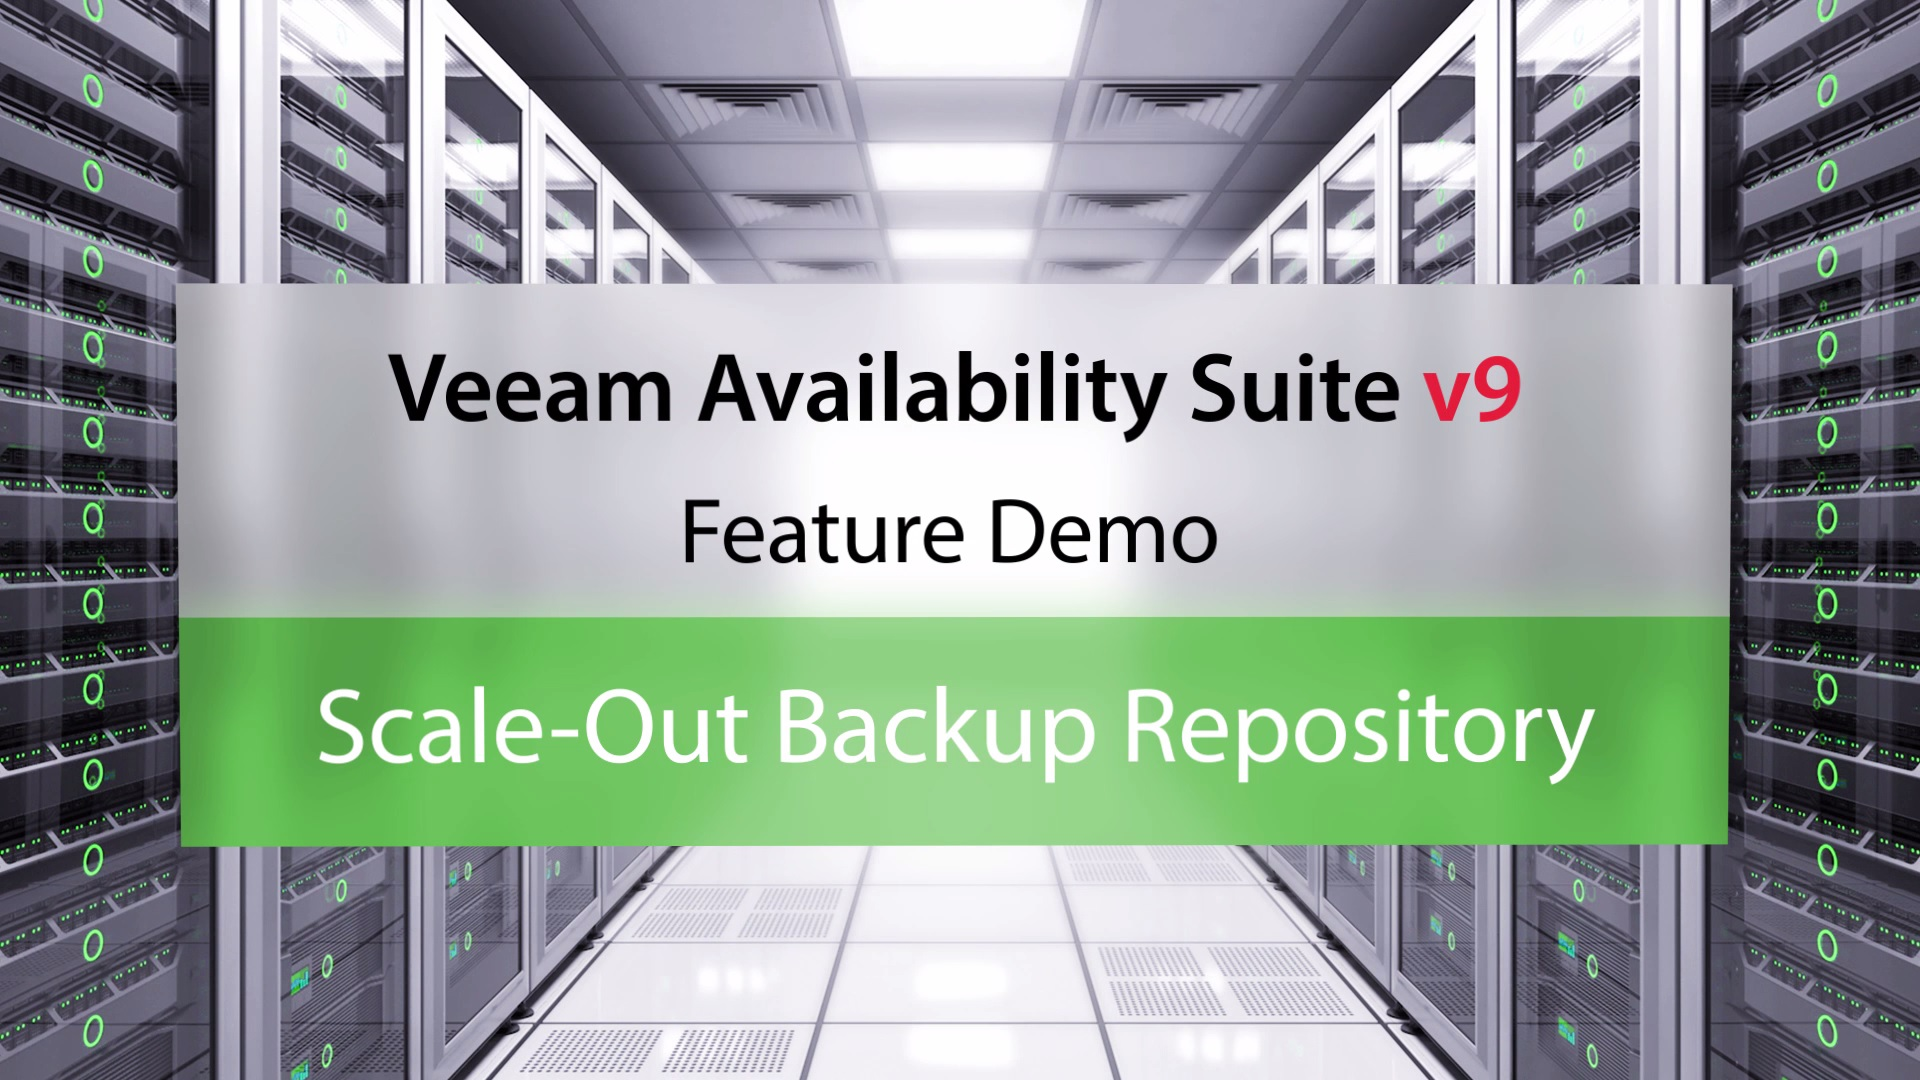 Veeam Availability Suite v9: Scale-Out Backup Repository